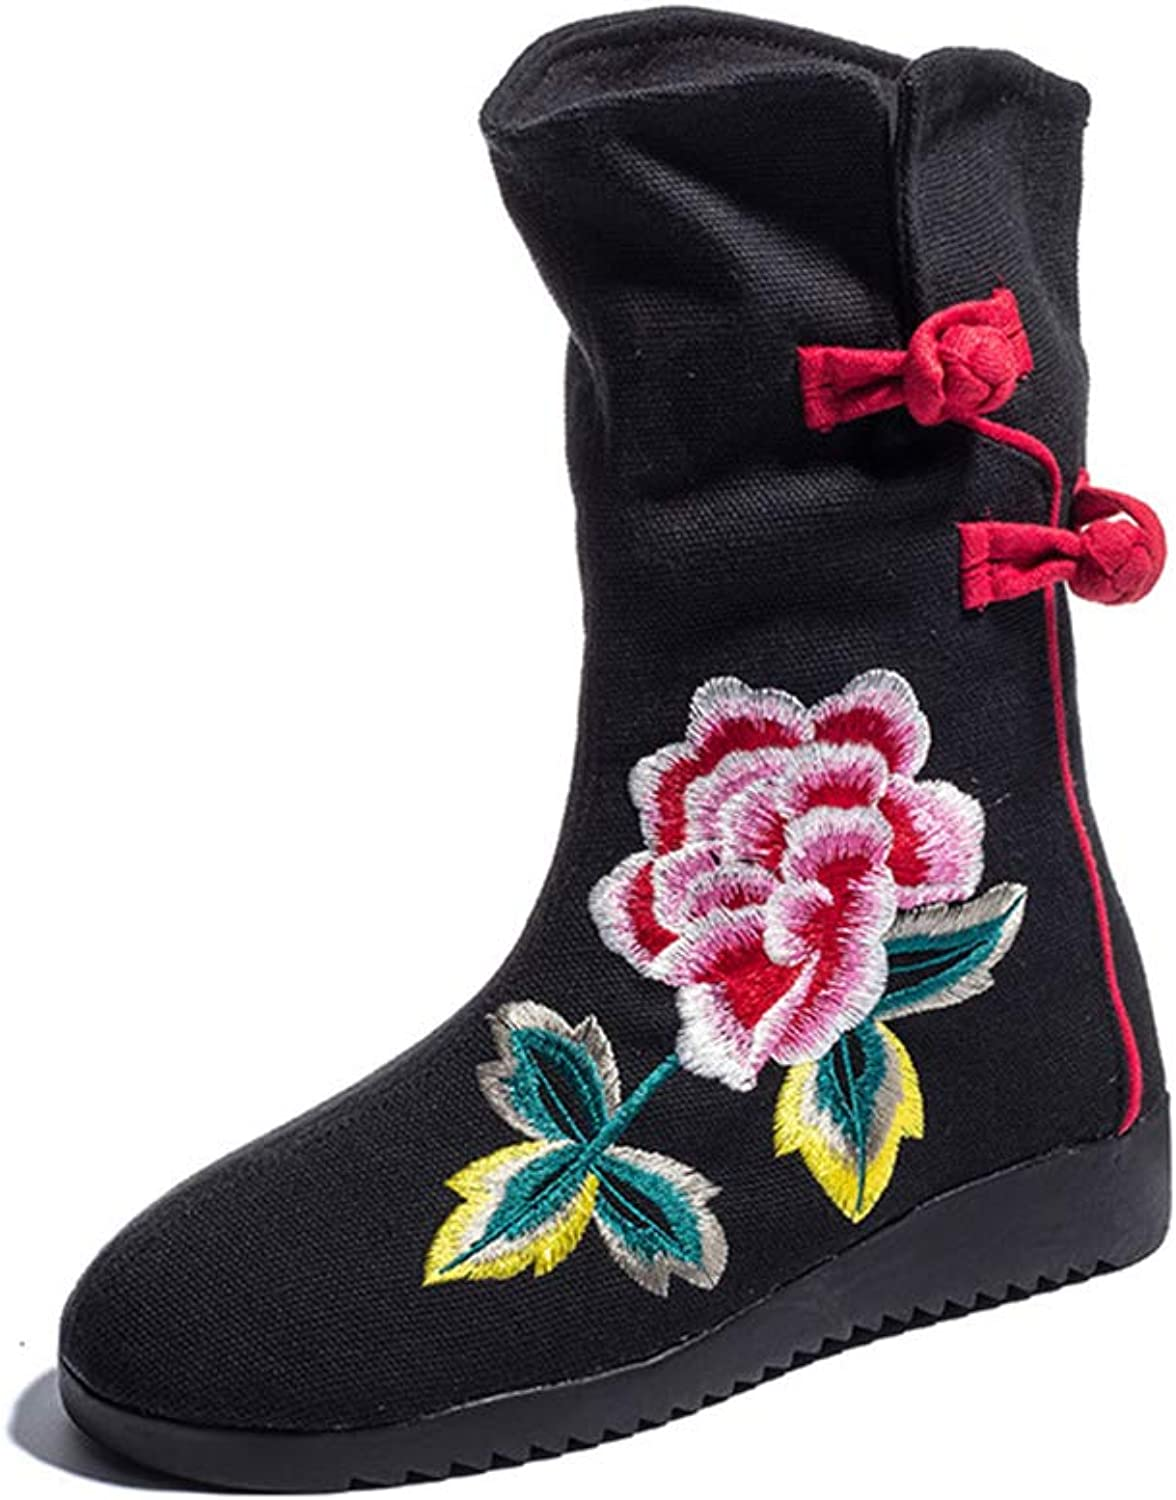 Women's Cloth shoes Autumn Ethnic Embroidered Boots Fashion Flat Boots Casual Party & Evening Dress shoes (color   Black, Size   39)